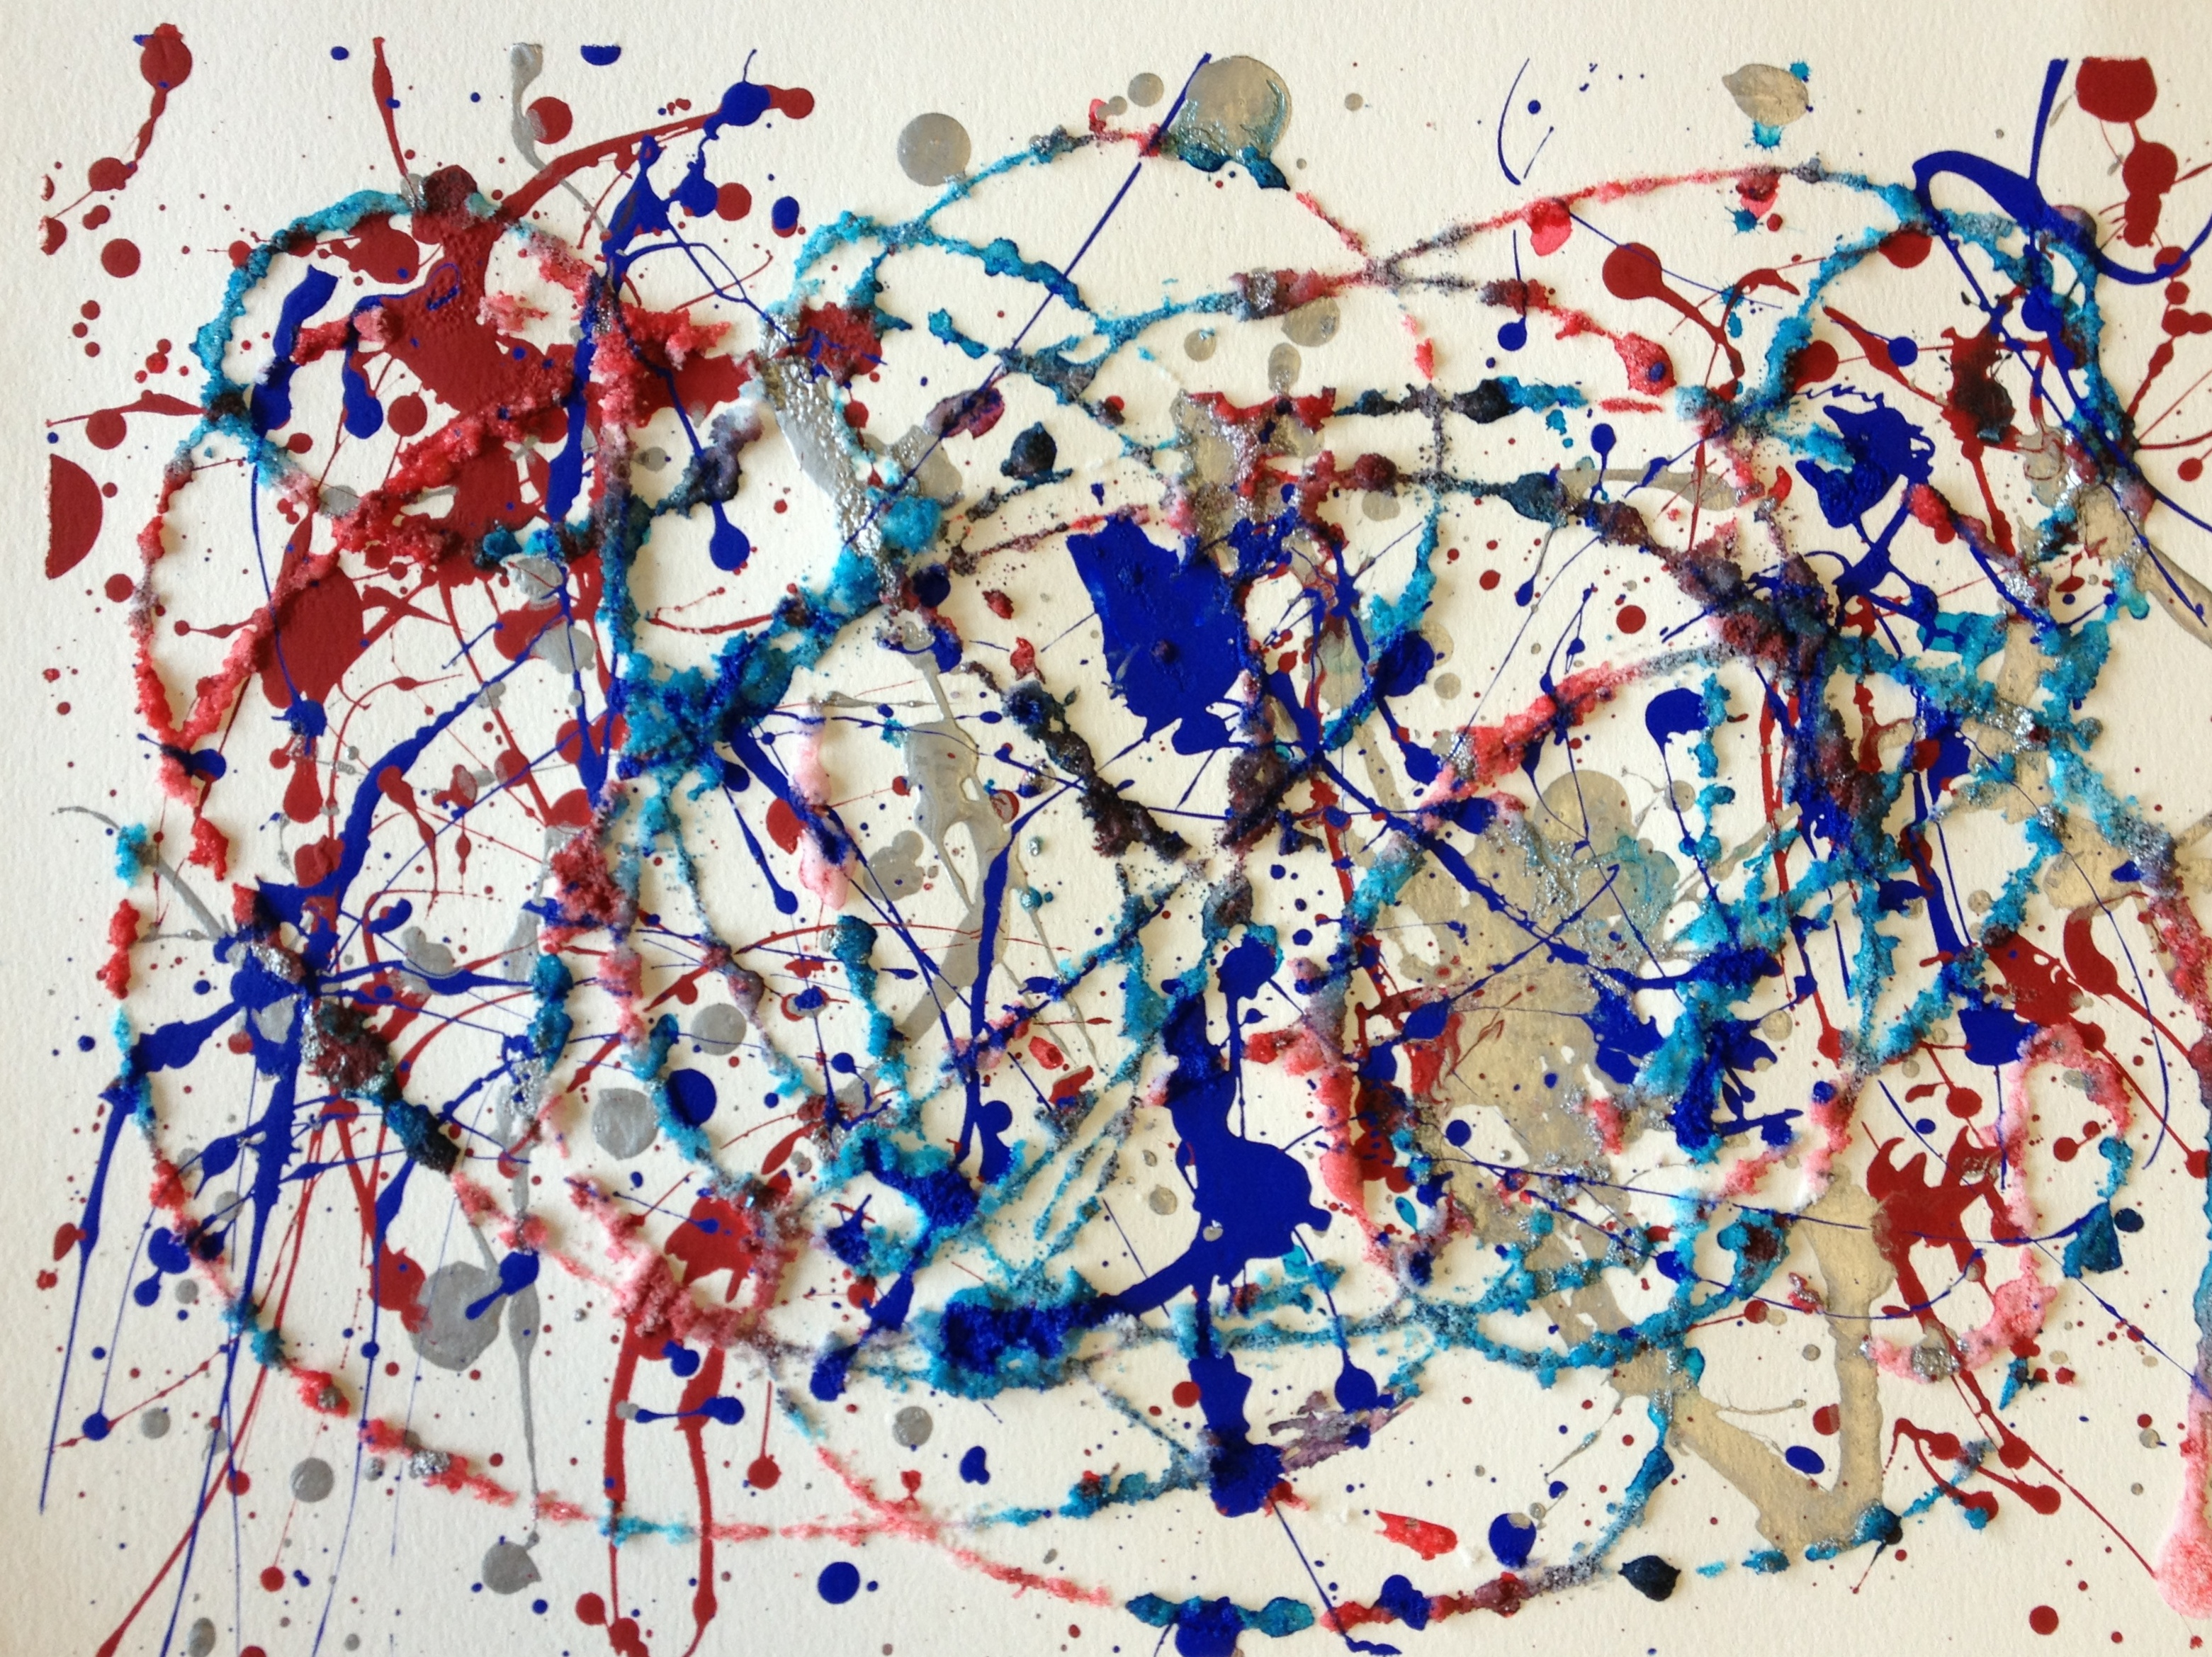 Jackson Pollock – Action Paintings | Art in Action